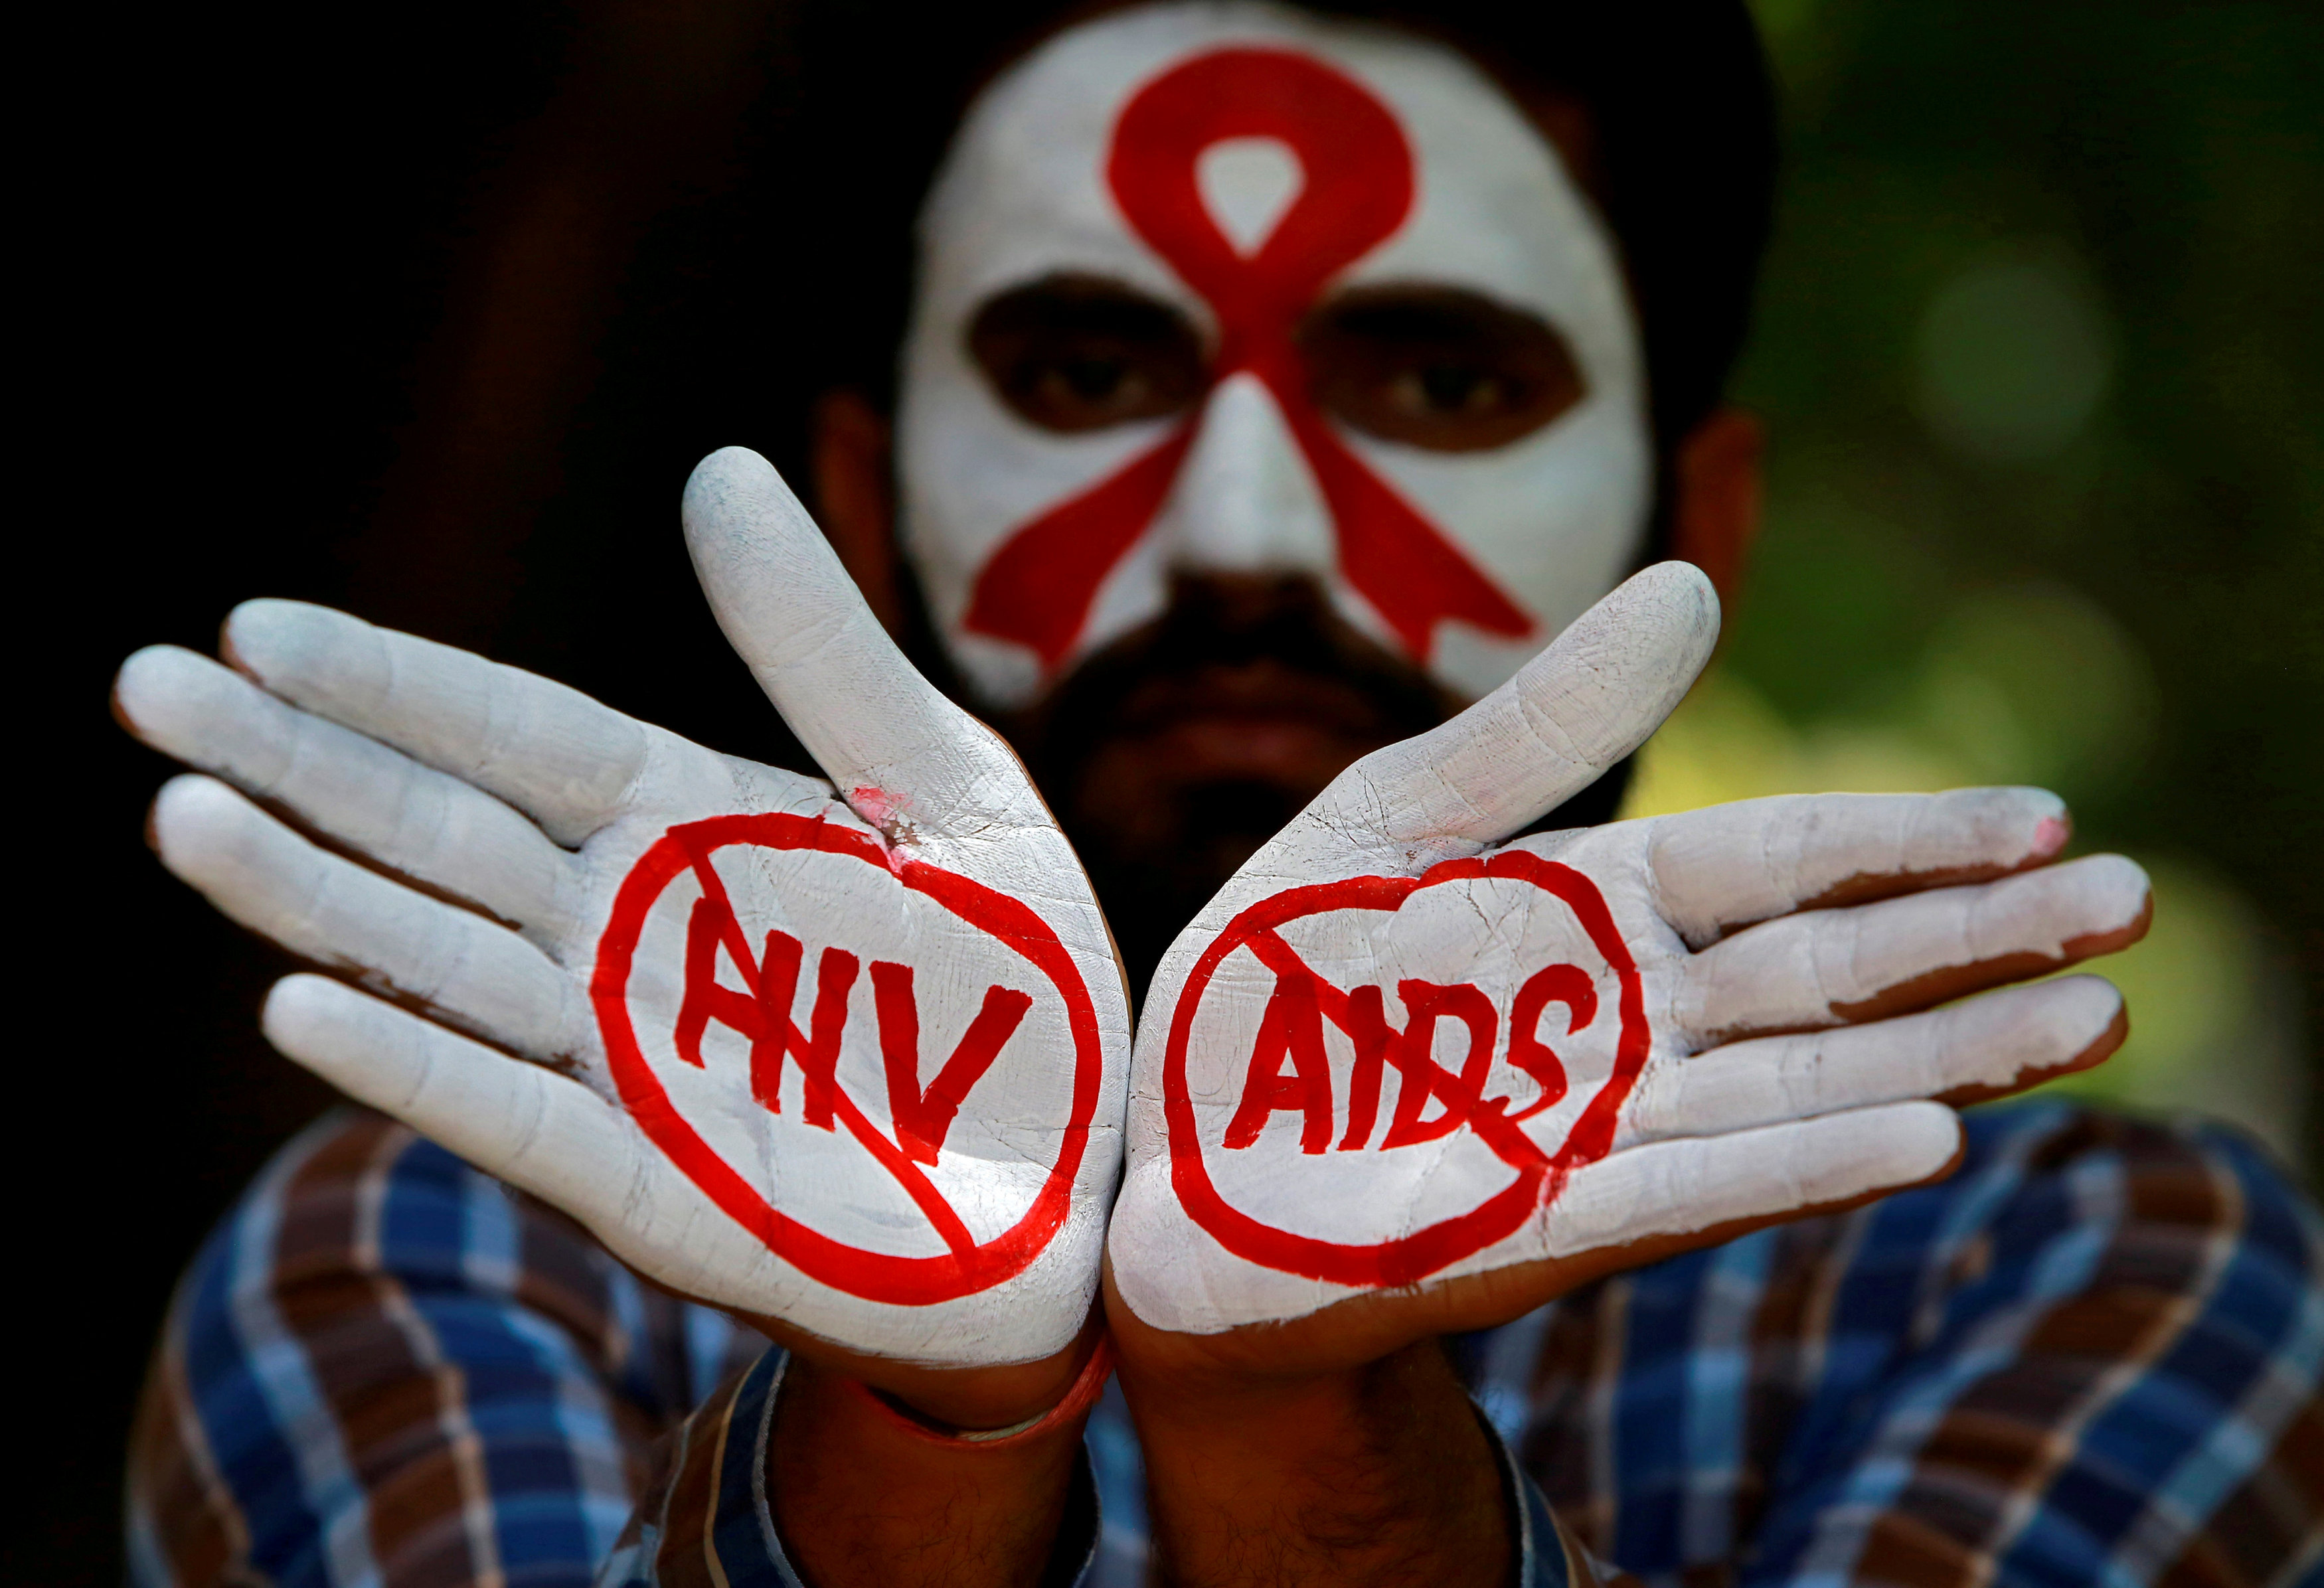 FILE PHOTO: A student displays his hands painted with messages as he poses during an HIV/AIDS awareness campaign to mark the International AIDS Candlelight Memorial, in Chandigarh